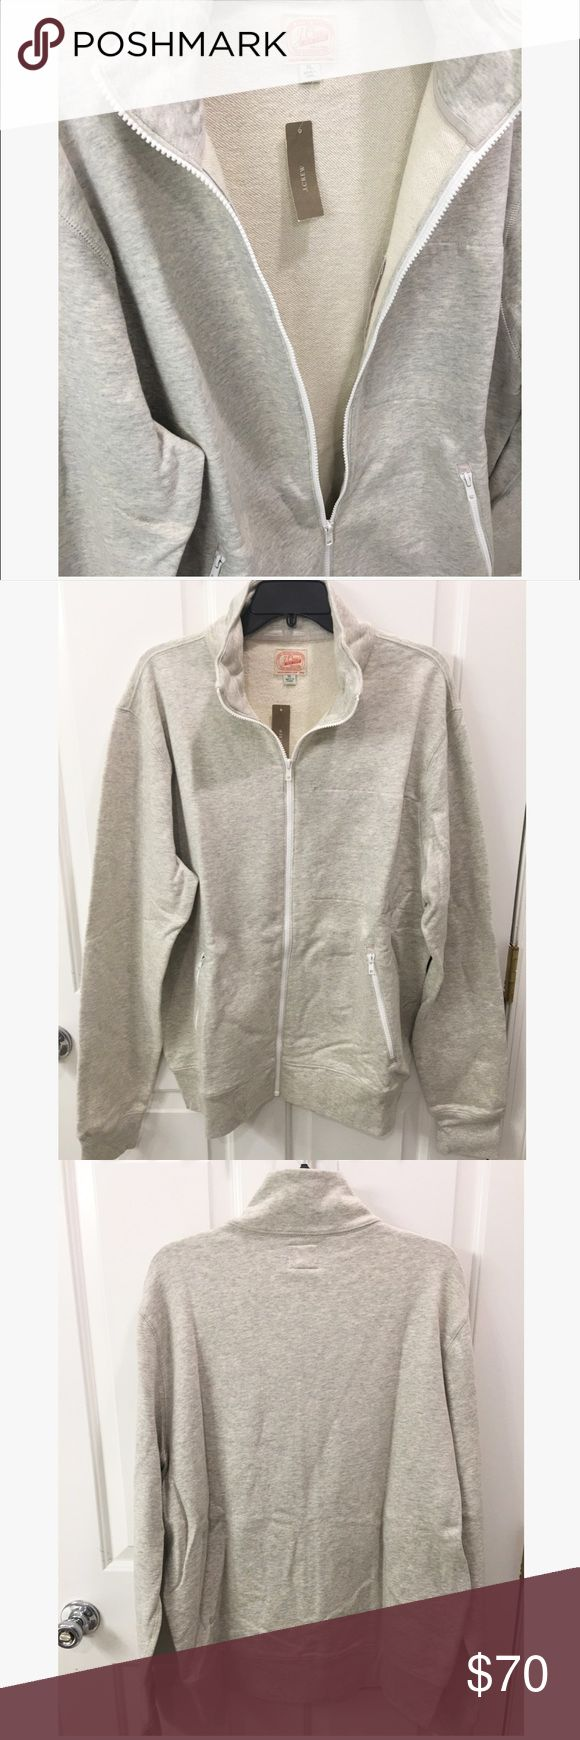 NEW J.Crew Zip-Up Beautiful heather grey zip up with white zipper accents and French terry lining. Sweat shirt is incredibly soft and durable...truly excellent quality. Only selling because my husband needs a different size or else this certainly would have been kept! J. Crew Shirts Sweatshirts & Hoodies